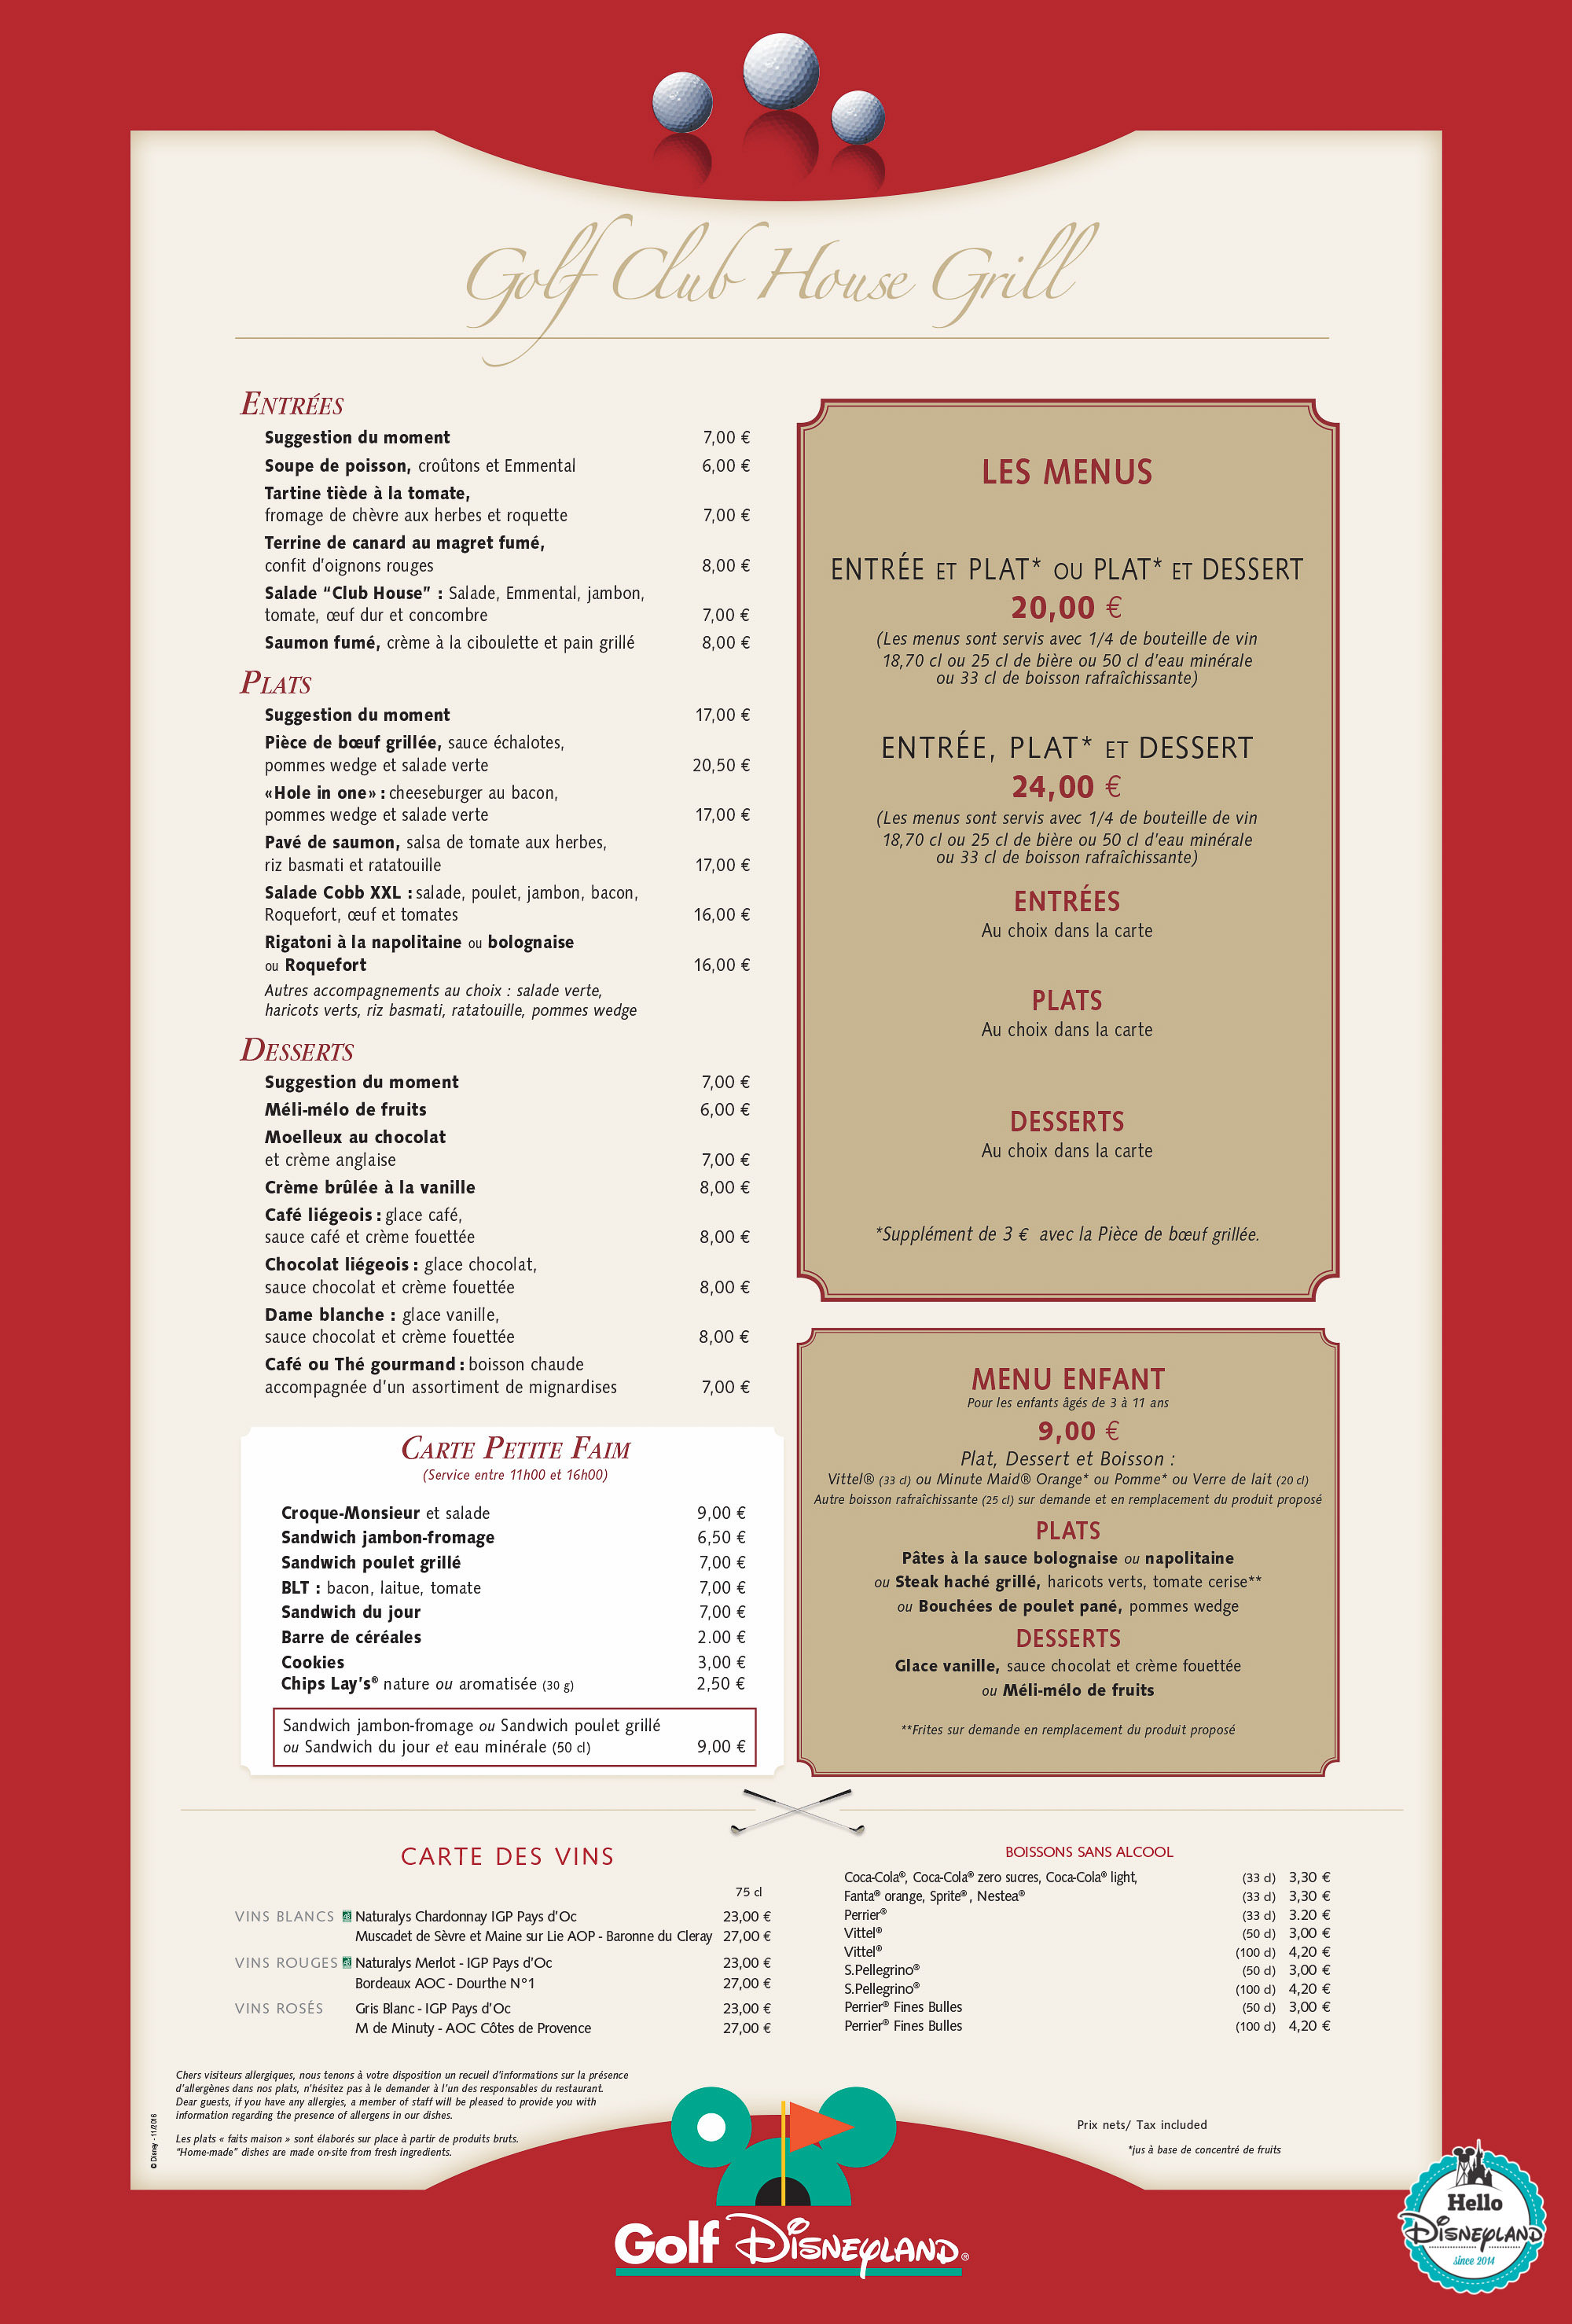 Disneyland Paris Golf Club House Grill Menu 2017